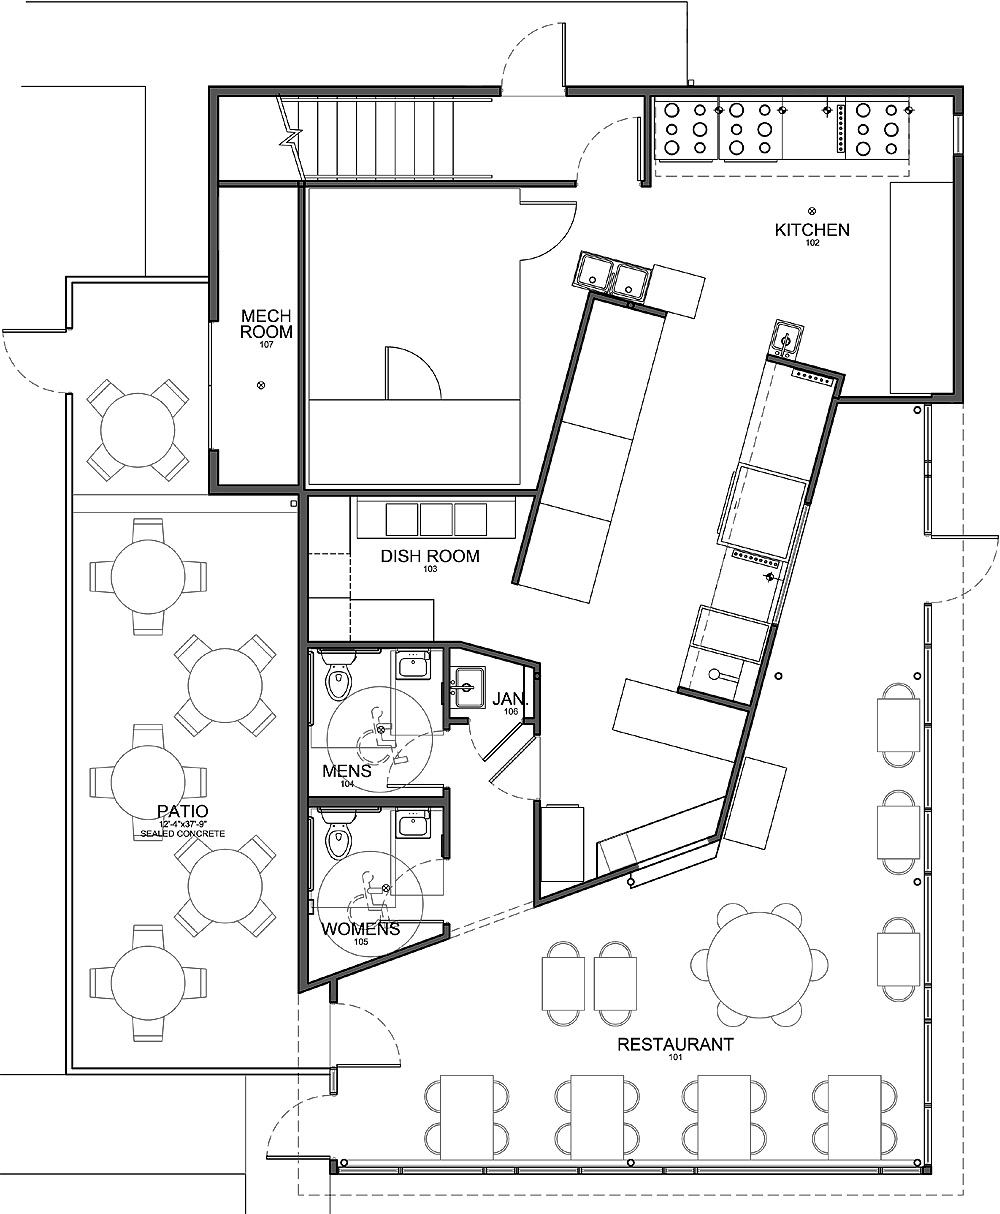 Commercial kitchen floor plans find house plans Find house plans